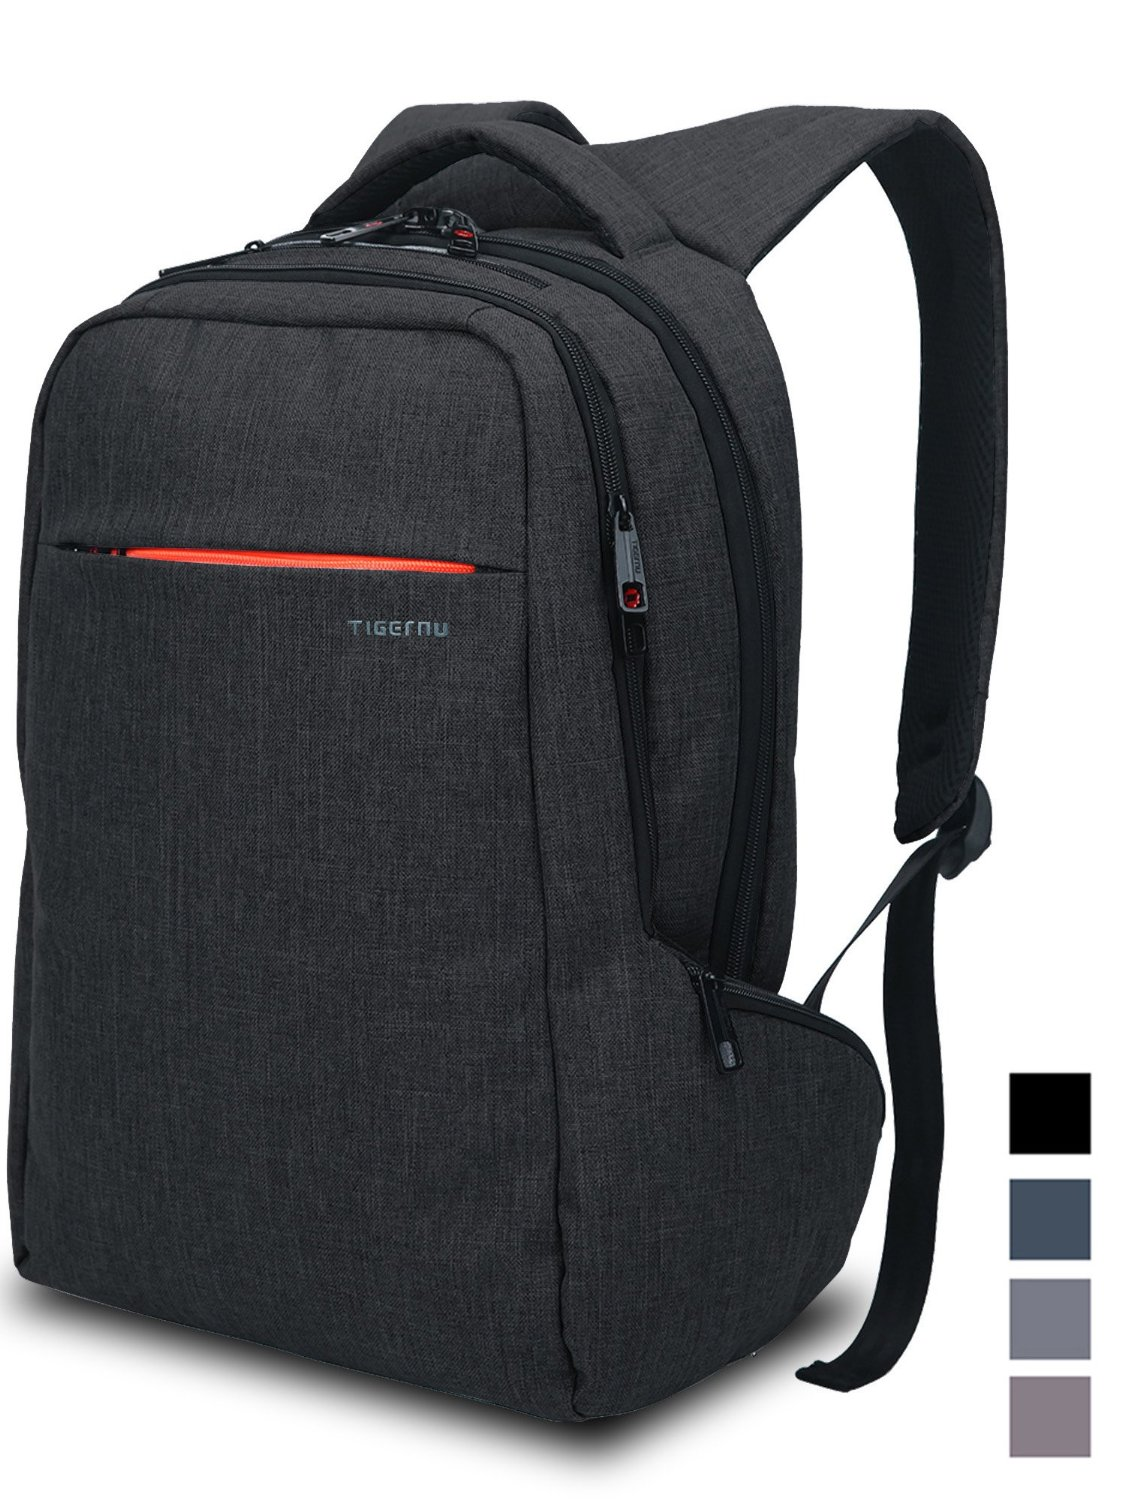 business rucksack unsere erfahrung der laptop rucksack test. Black Bedroom Furniture Sets. Home Design Ideas